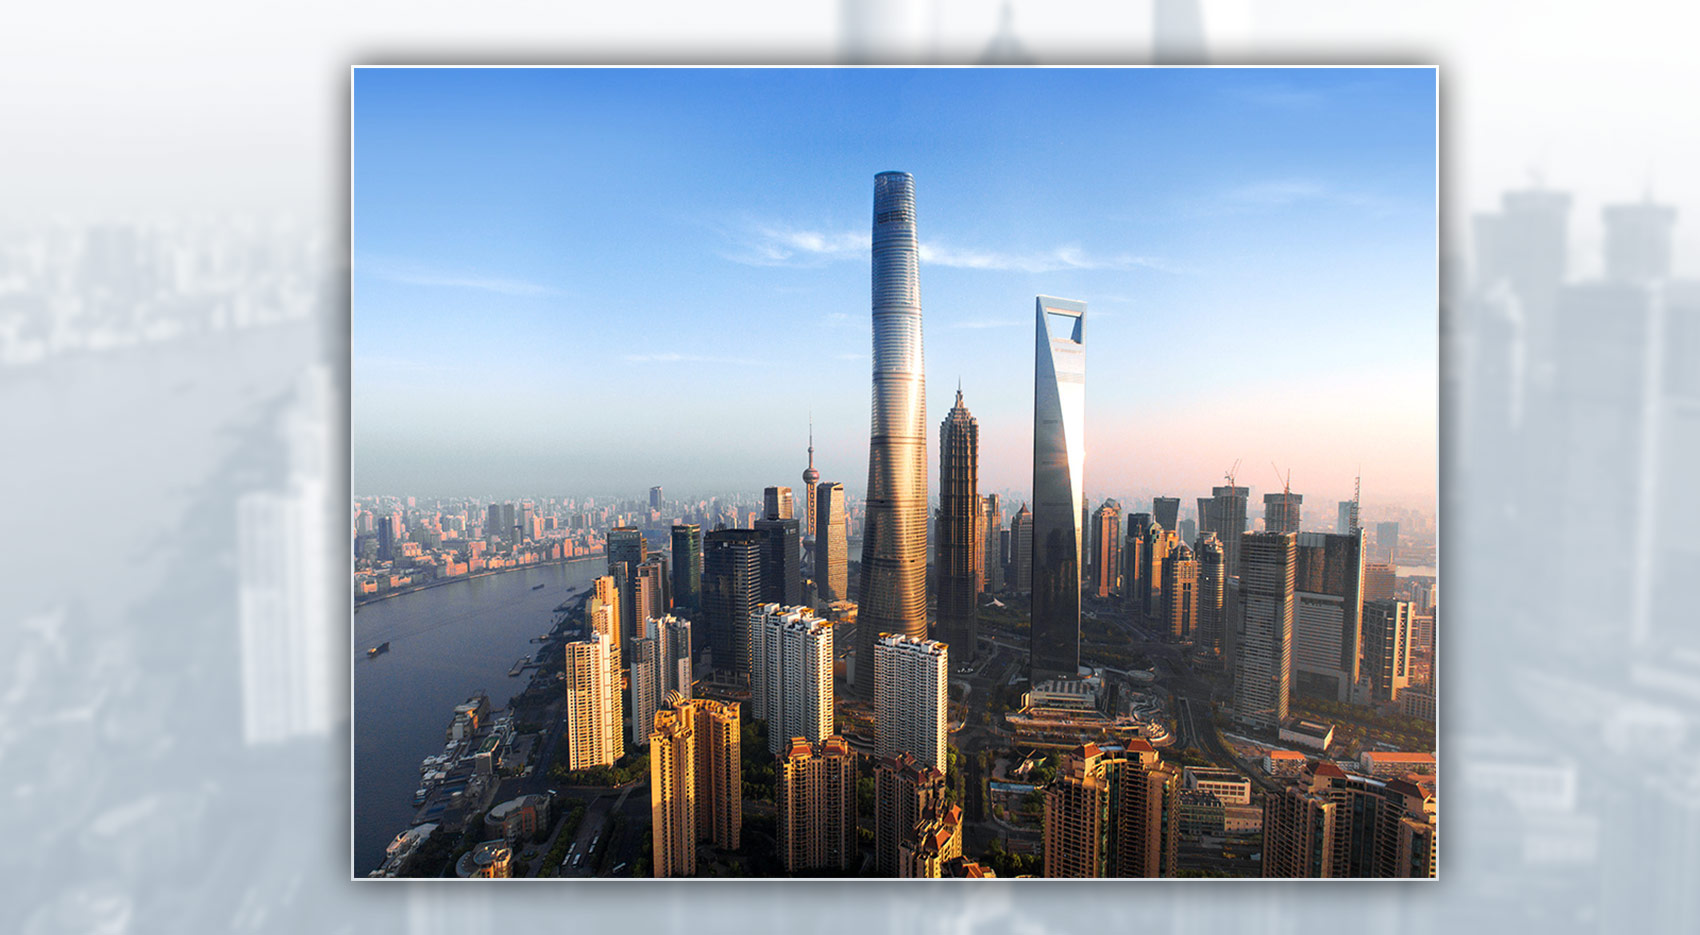 shangai tower skyline